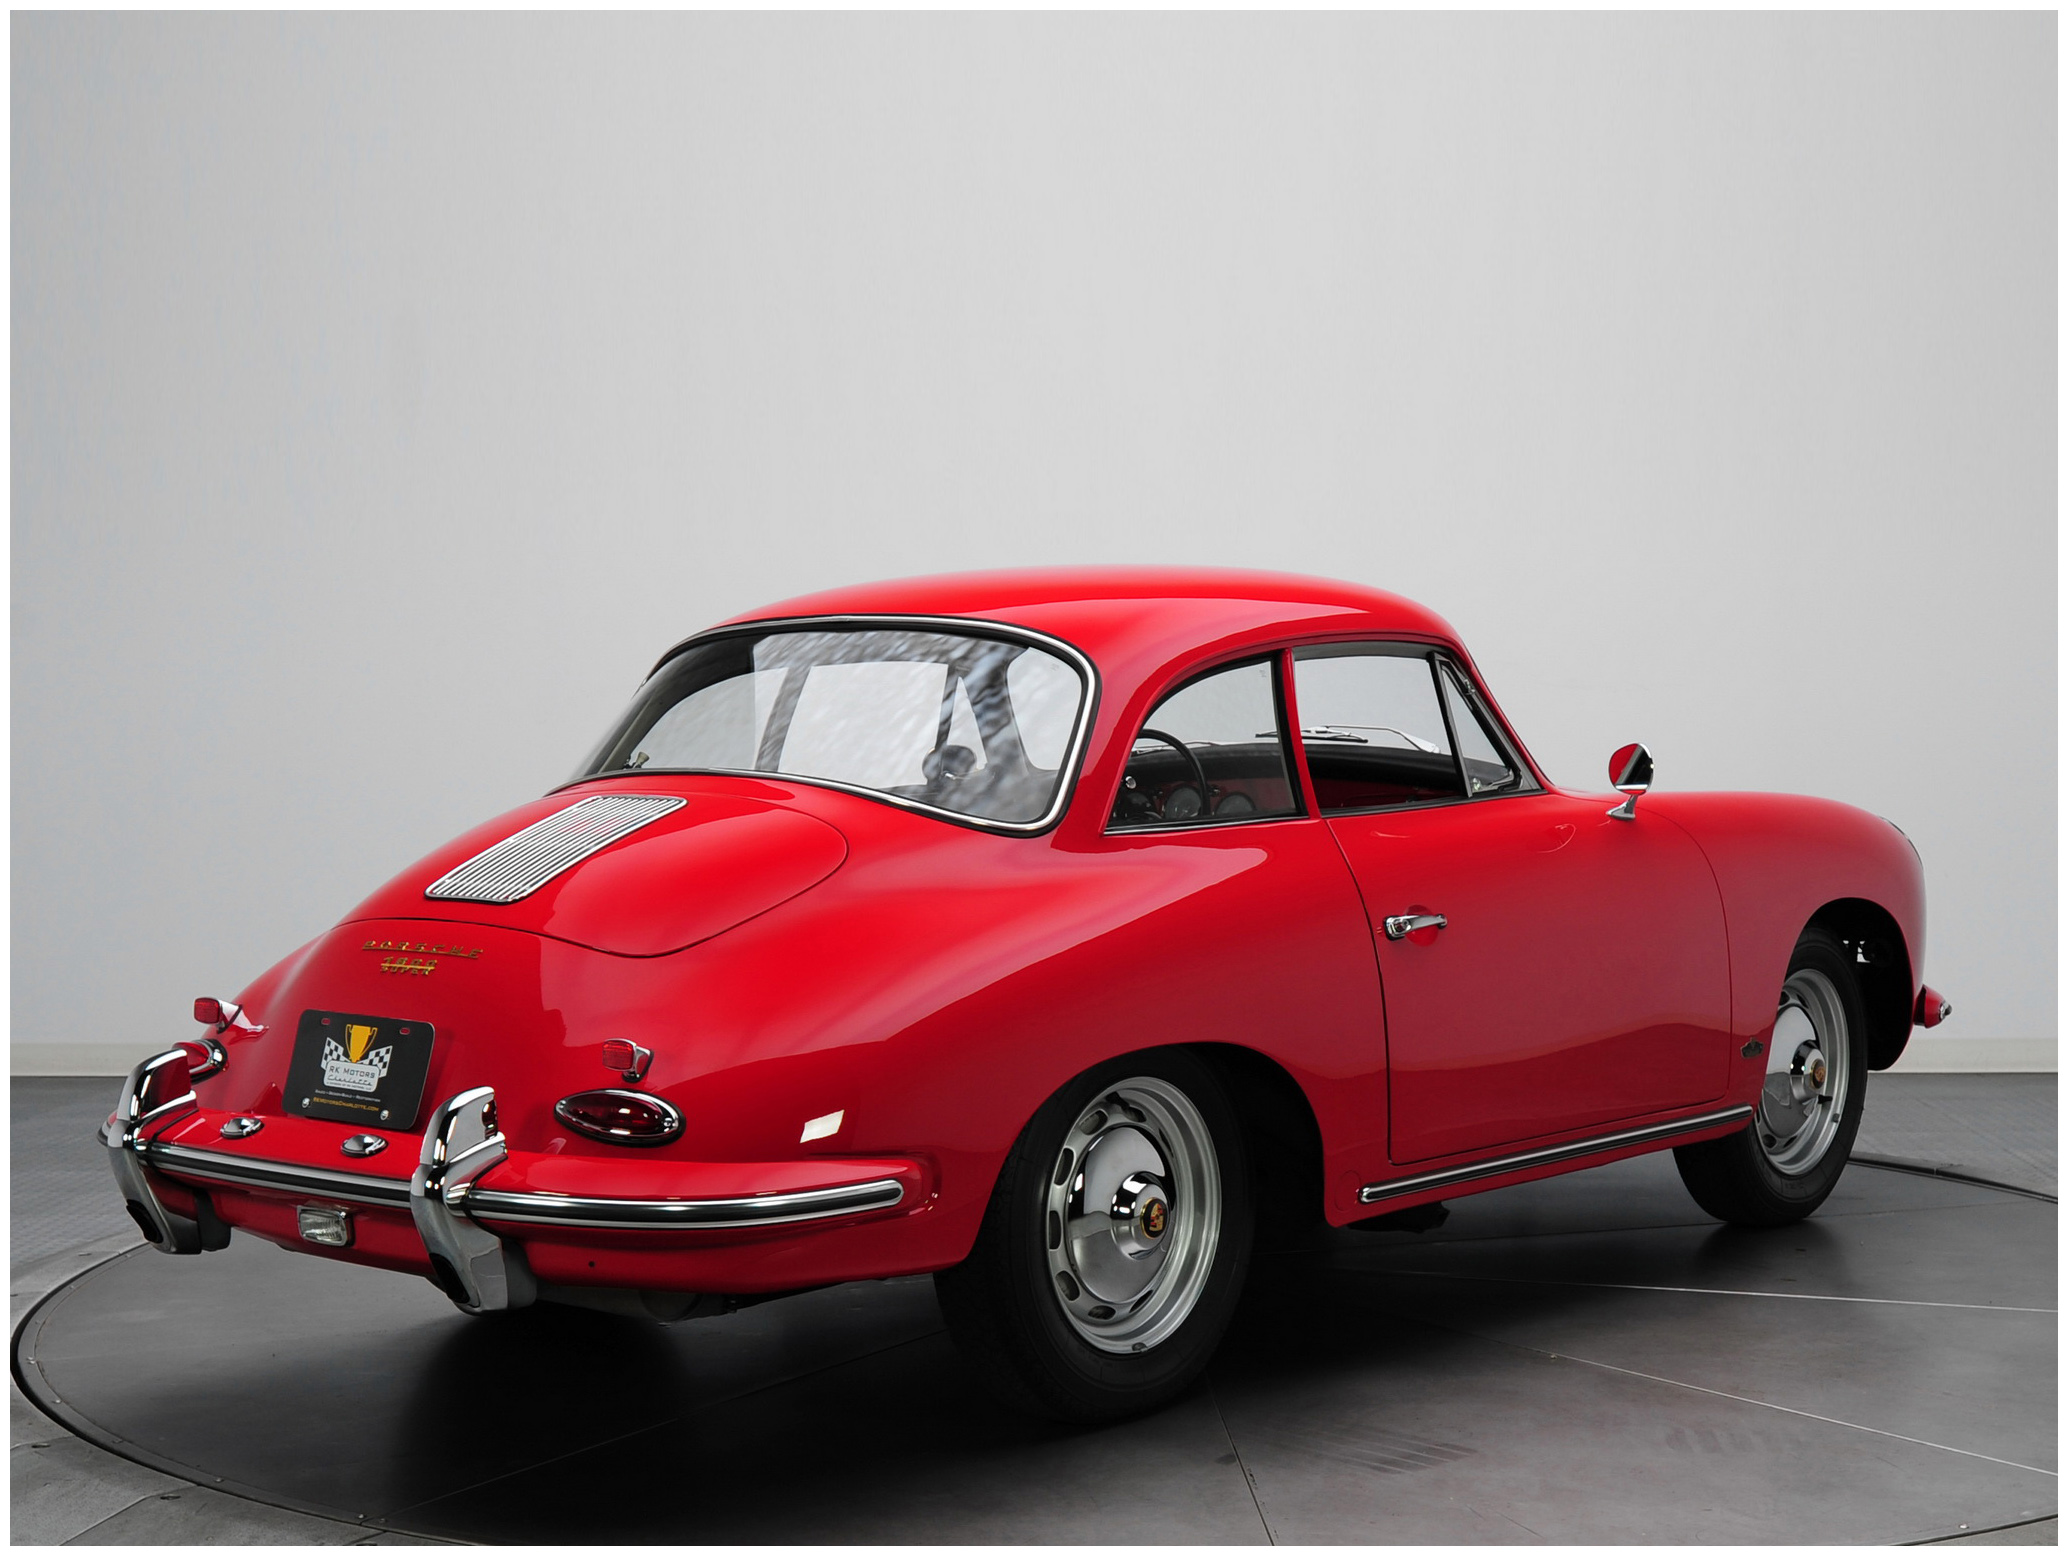 1961 porsche 356b 1600 super coupe by karmann pleasurephoto. Black Bedroom Furniture Sets. Home Design Ideas